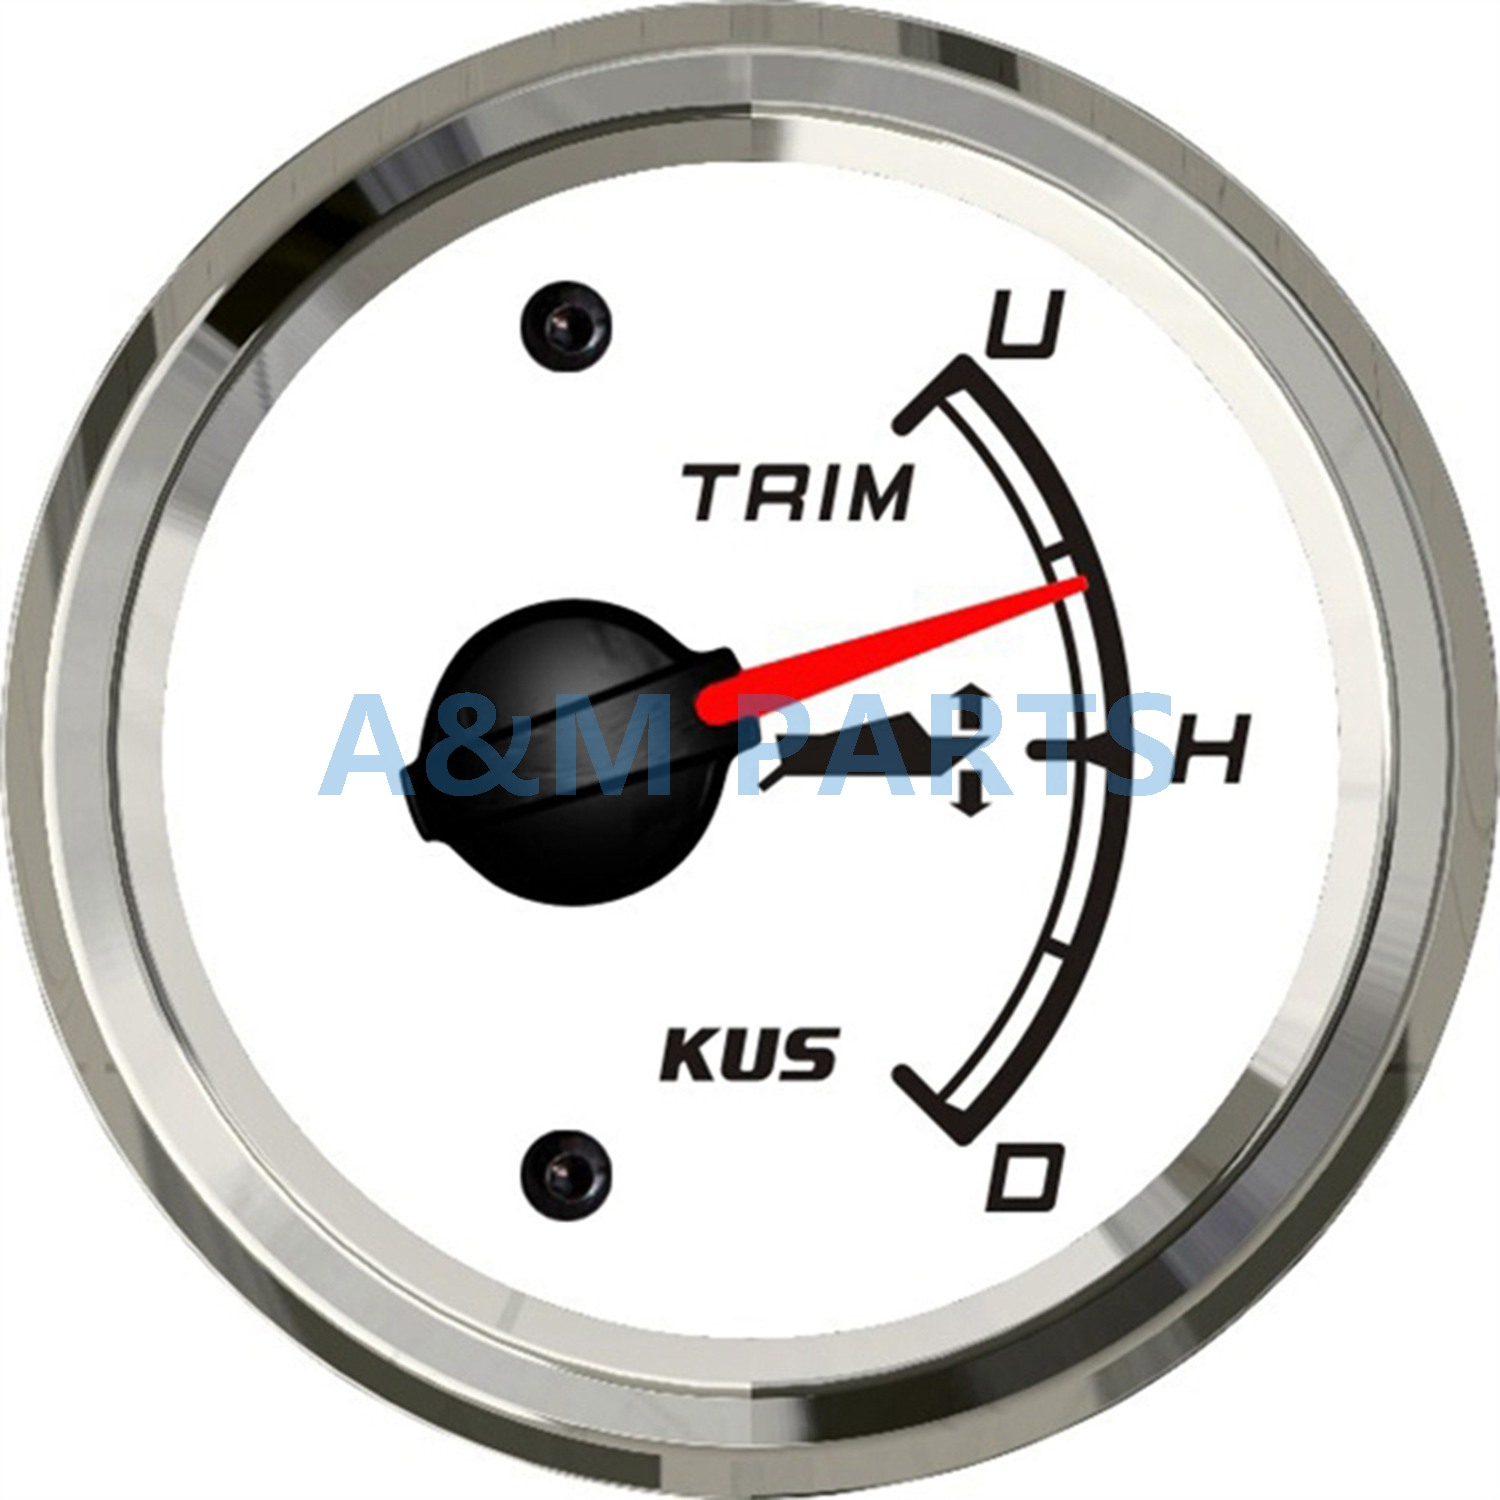 Universal KUS Boat Trim Gauge Marine Trim Tilt Indicator for Inboard Outboard Engine 52mm